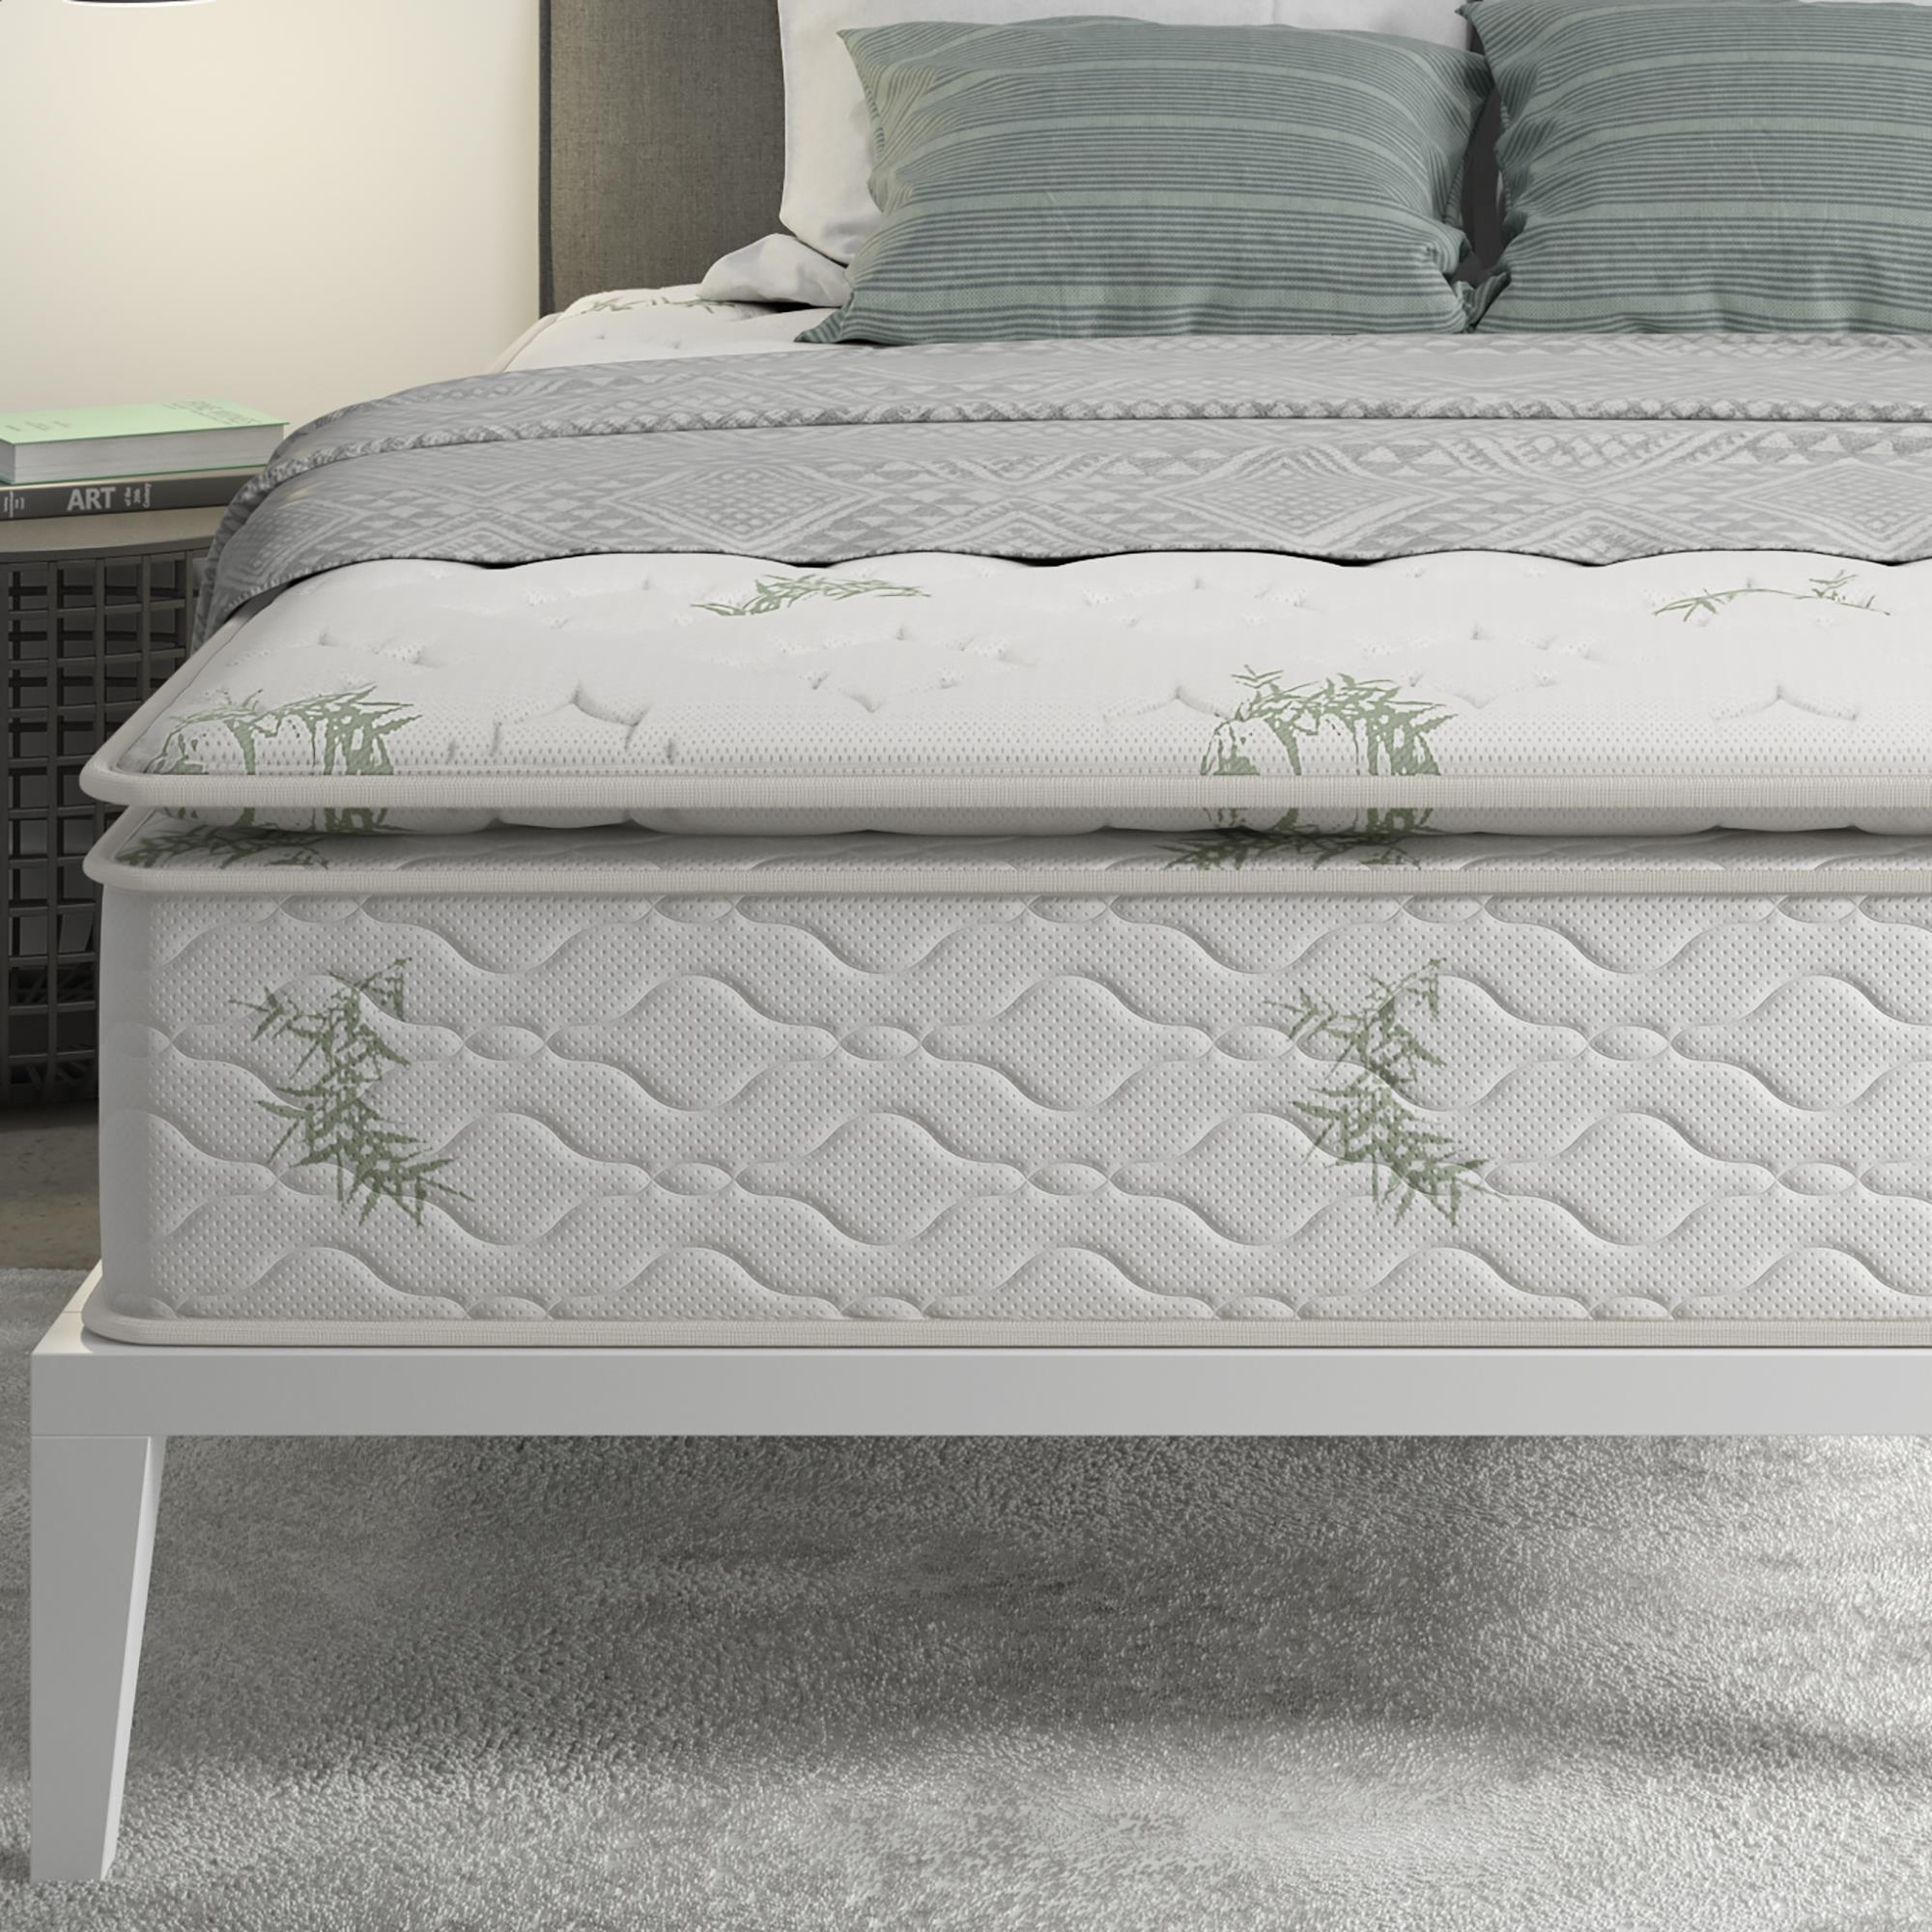 ashaway twin beautyrest pillowtop of pillow full mattress clearance ideas top simmons recharge images size dazzling